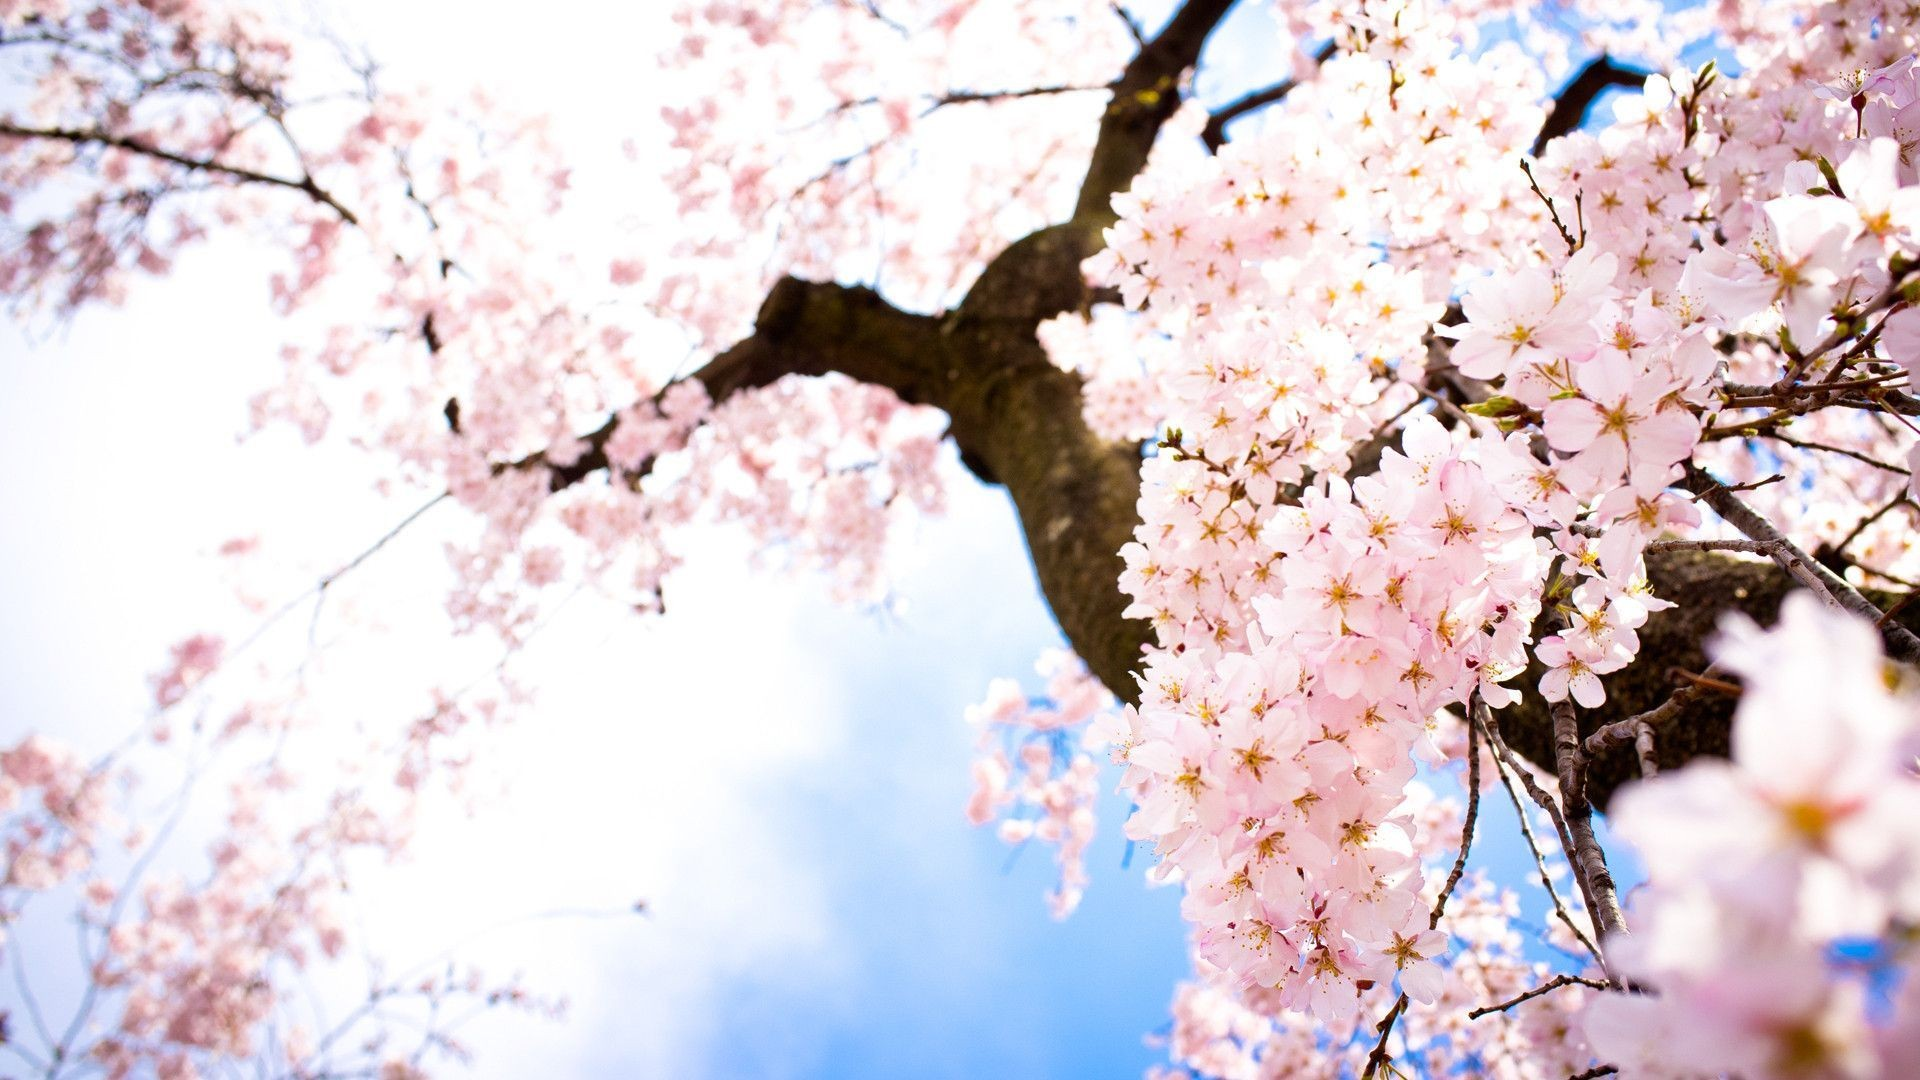 Sakura wallpaper ·① Download free stunning wallpapers for desktop